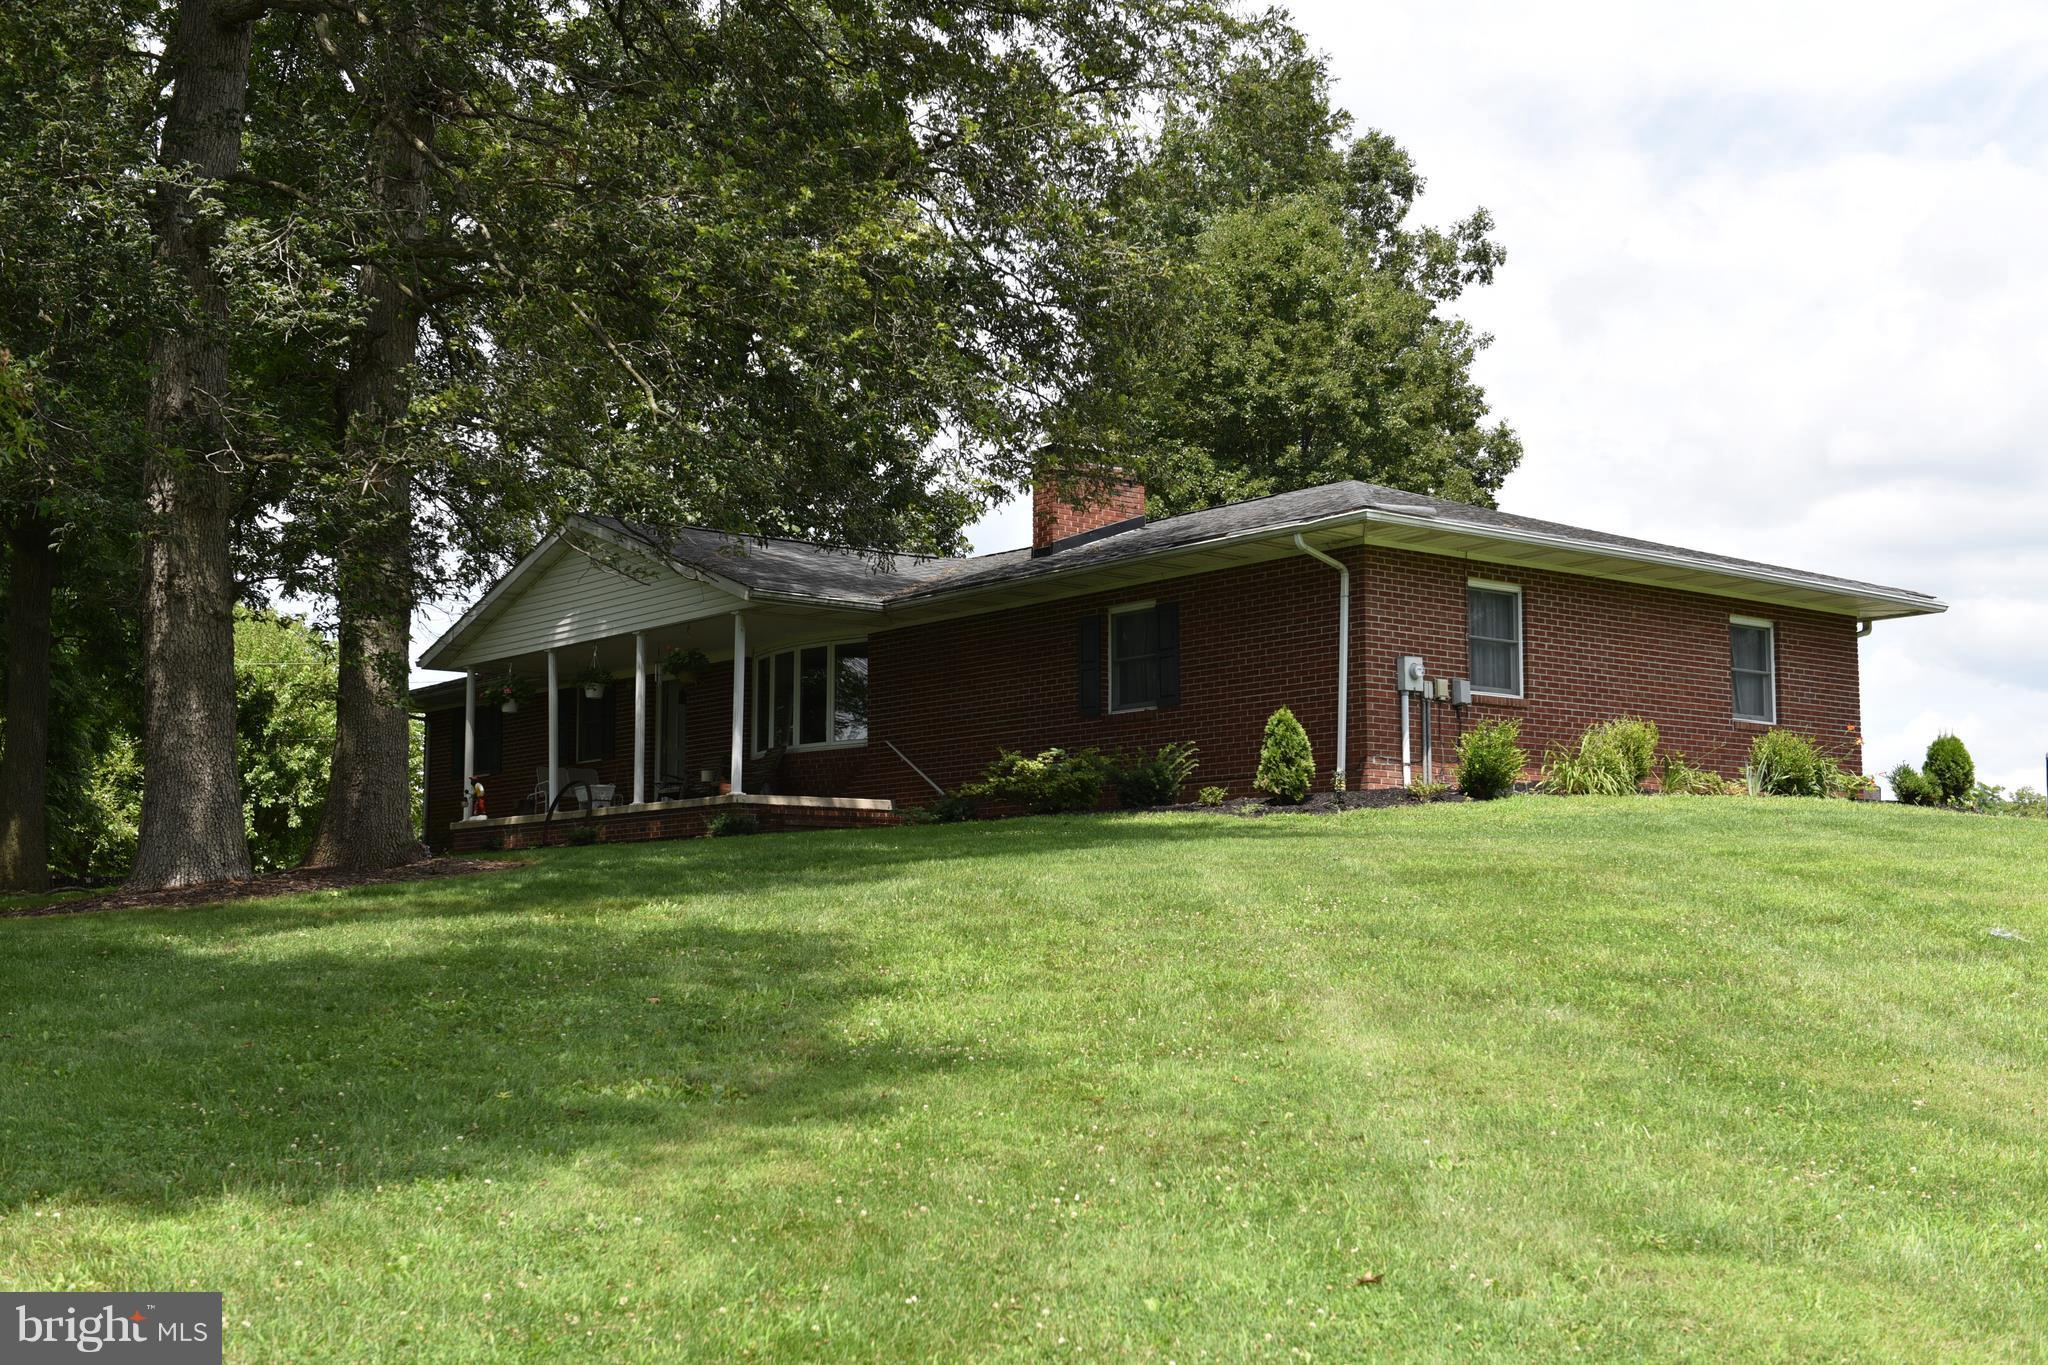 9867 GRINDSTONE HILL ROAD, GREENCASTLE, PA 17225